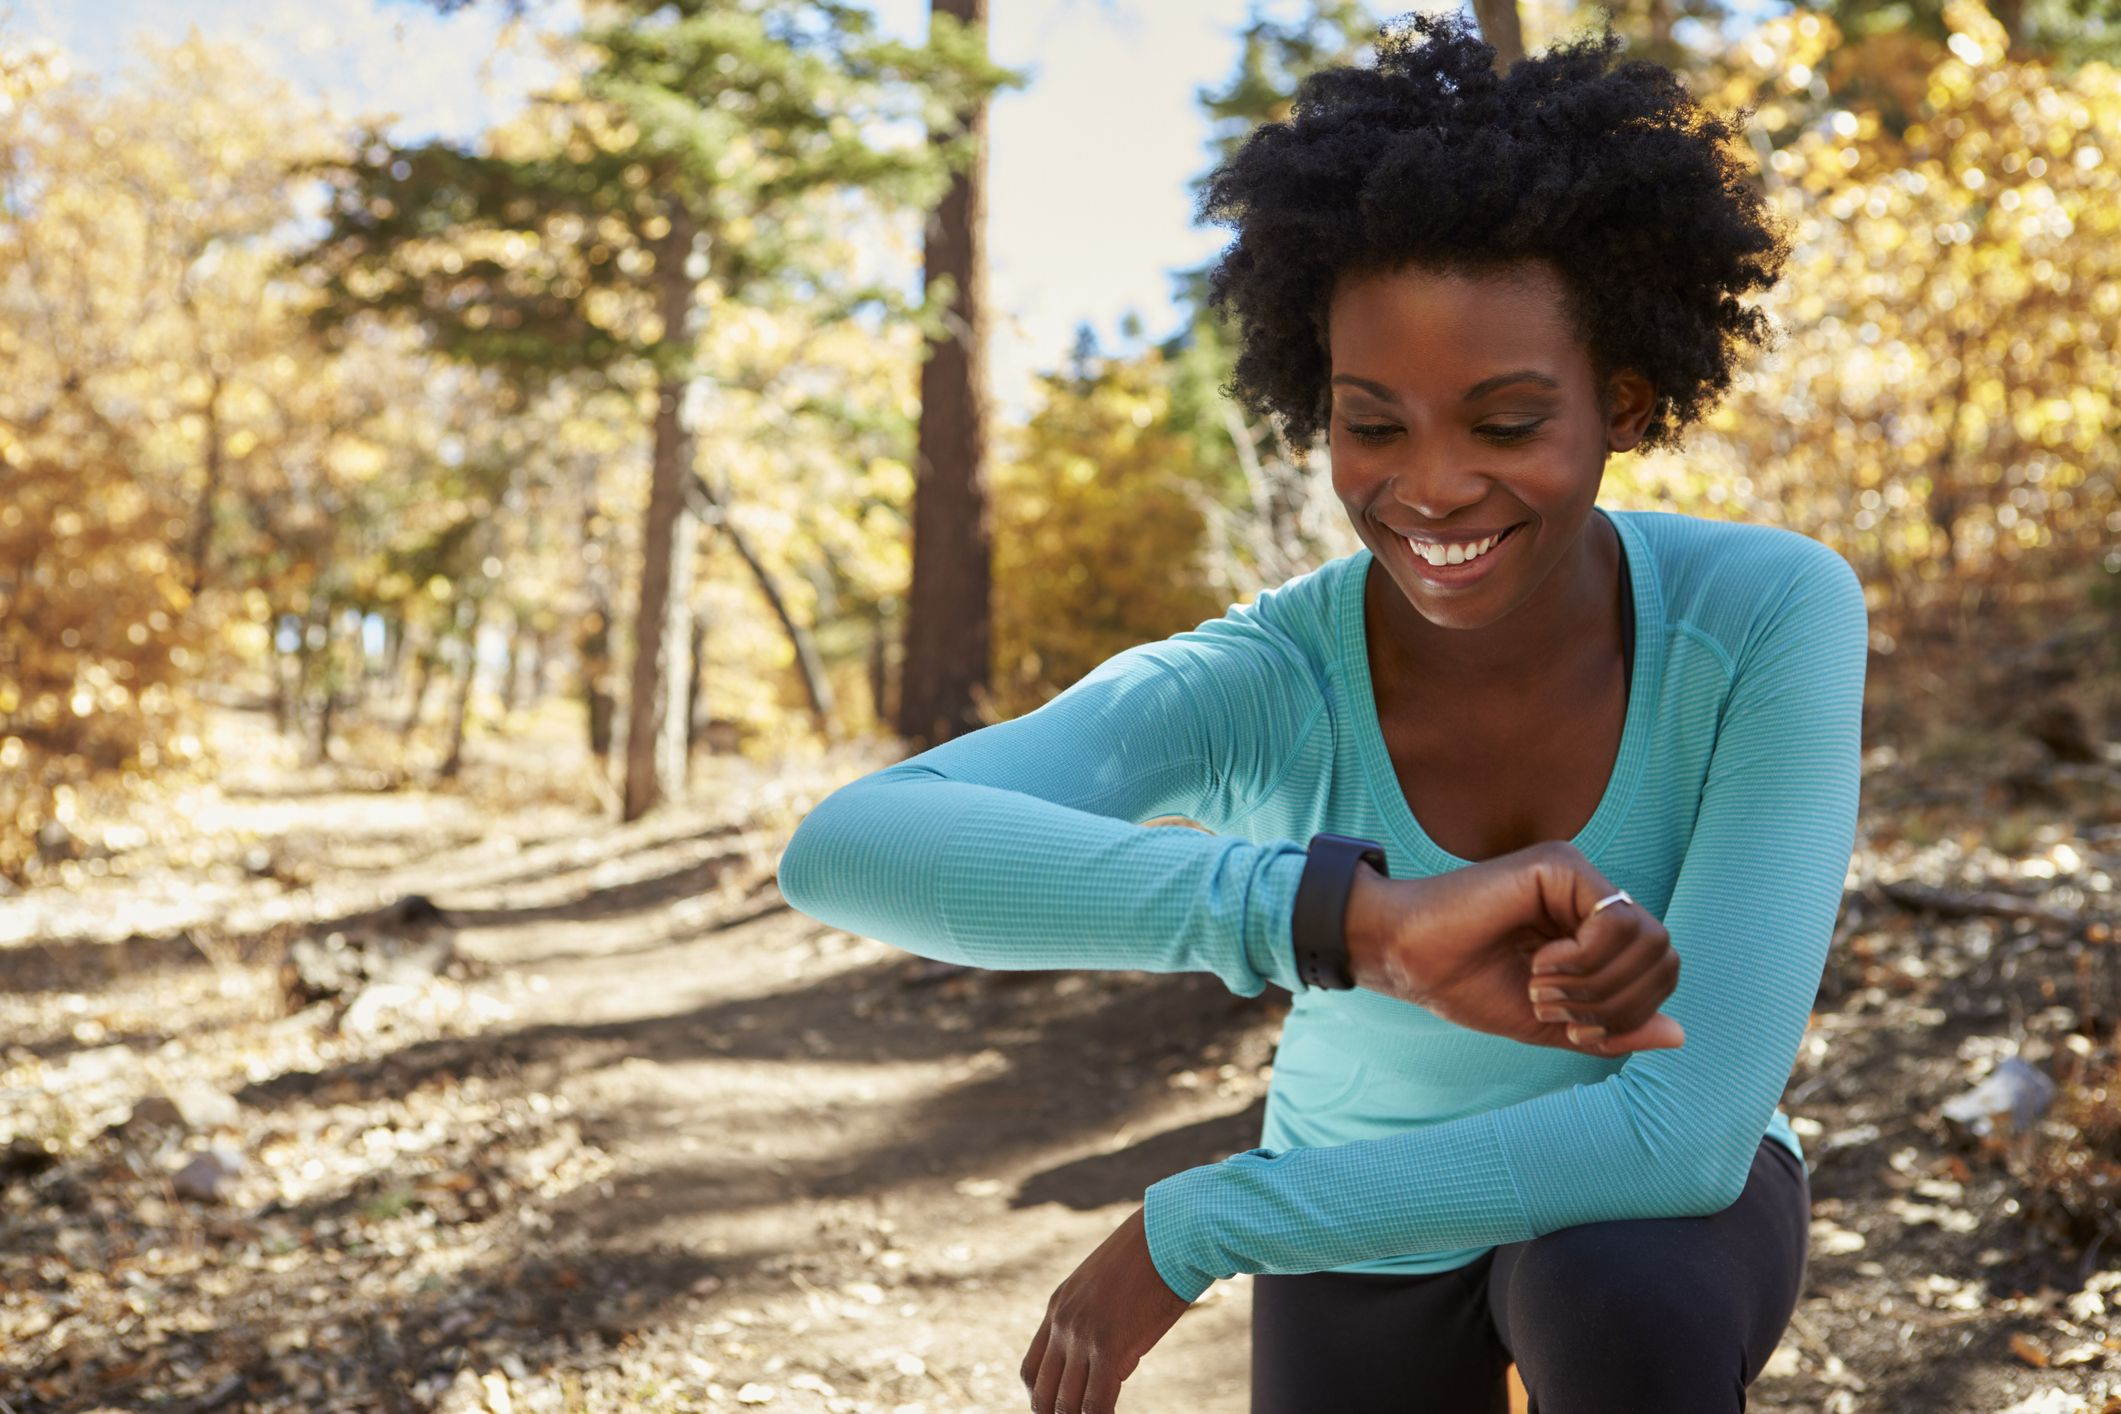 Young black woman in a forest checking smartwatch and smiling